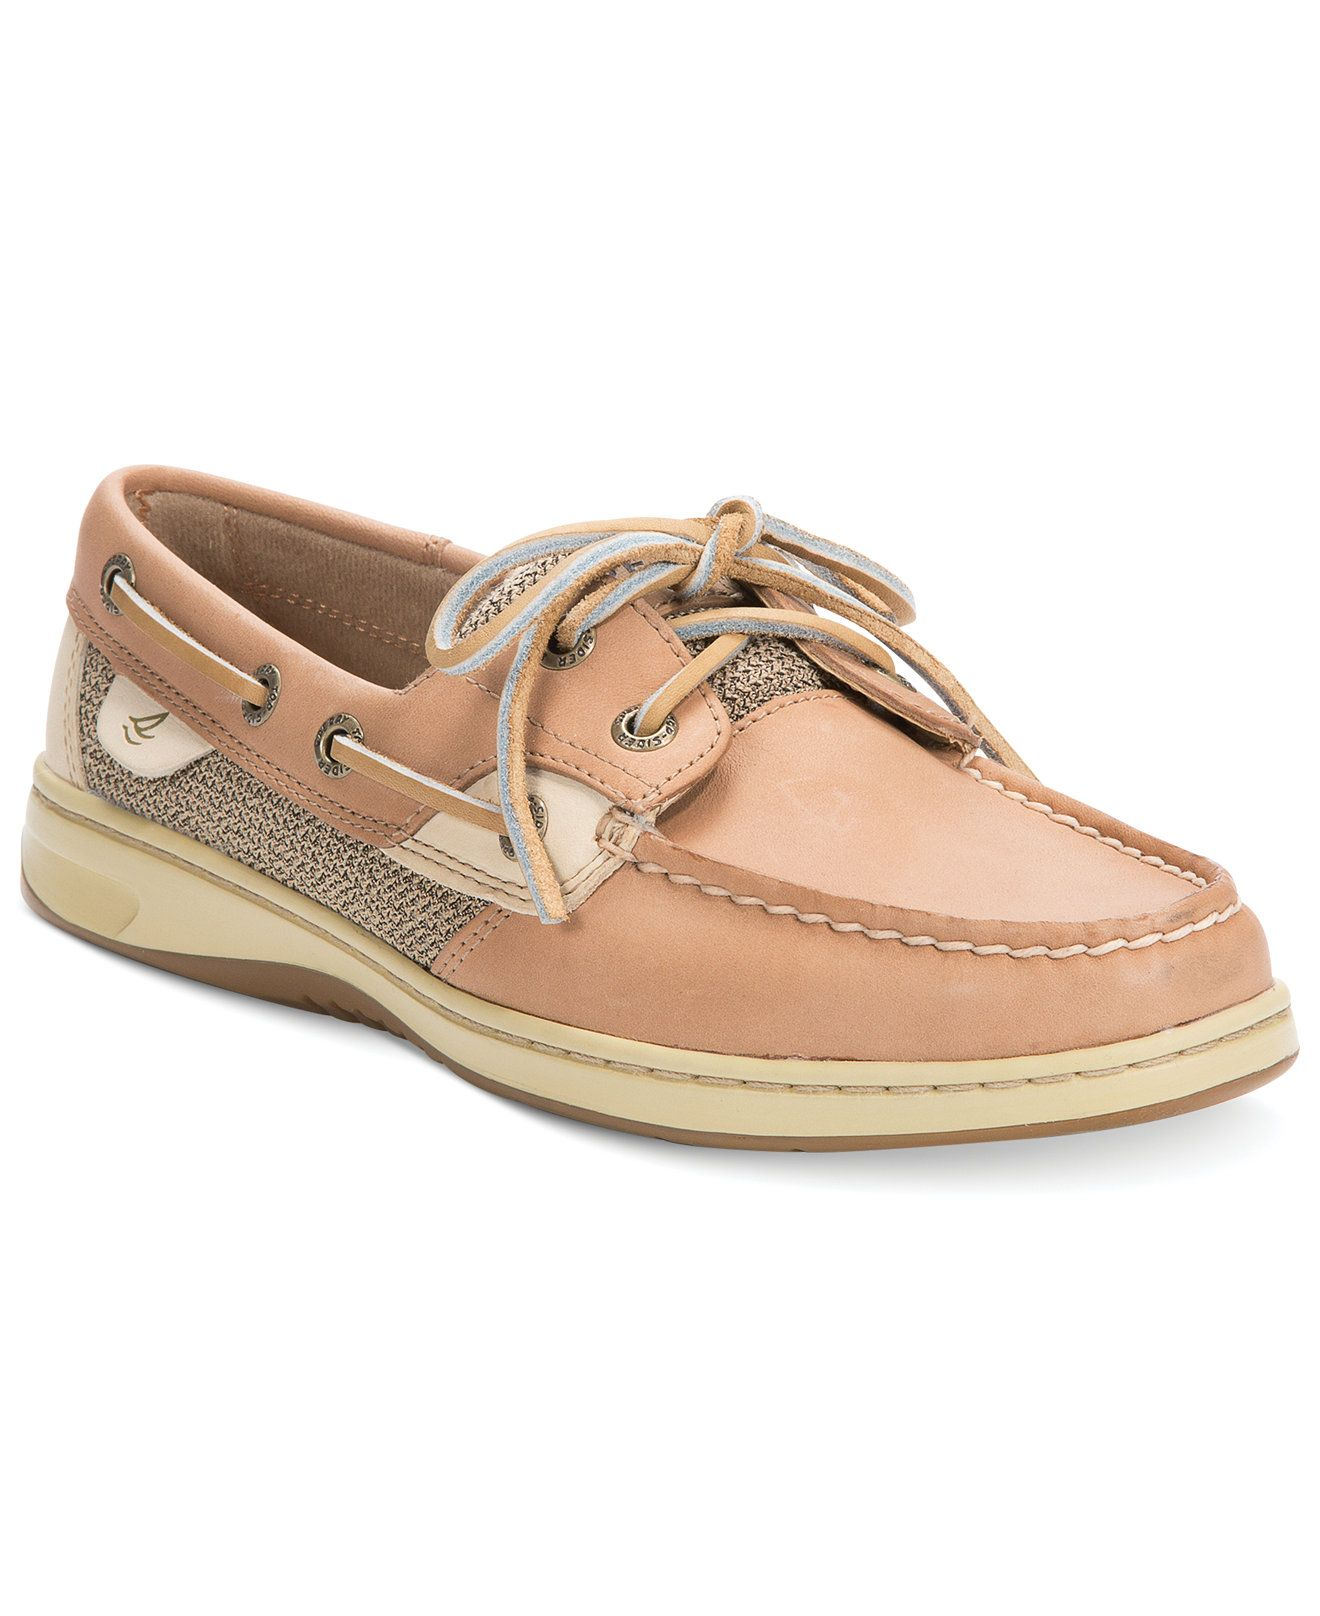 aec9cbfd770c74 Sperry Women's Bluefish Boat Shoes - Shoes - Macy's | Products I ...